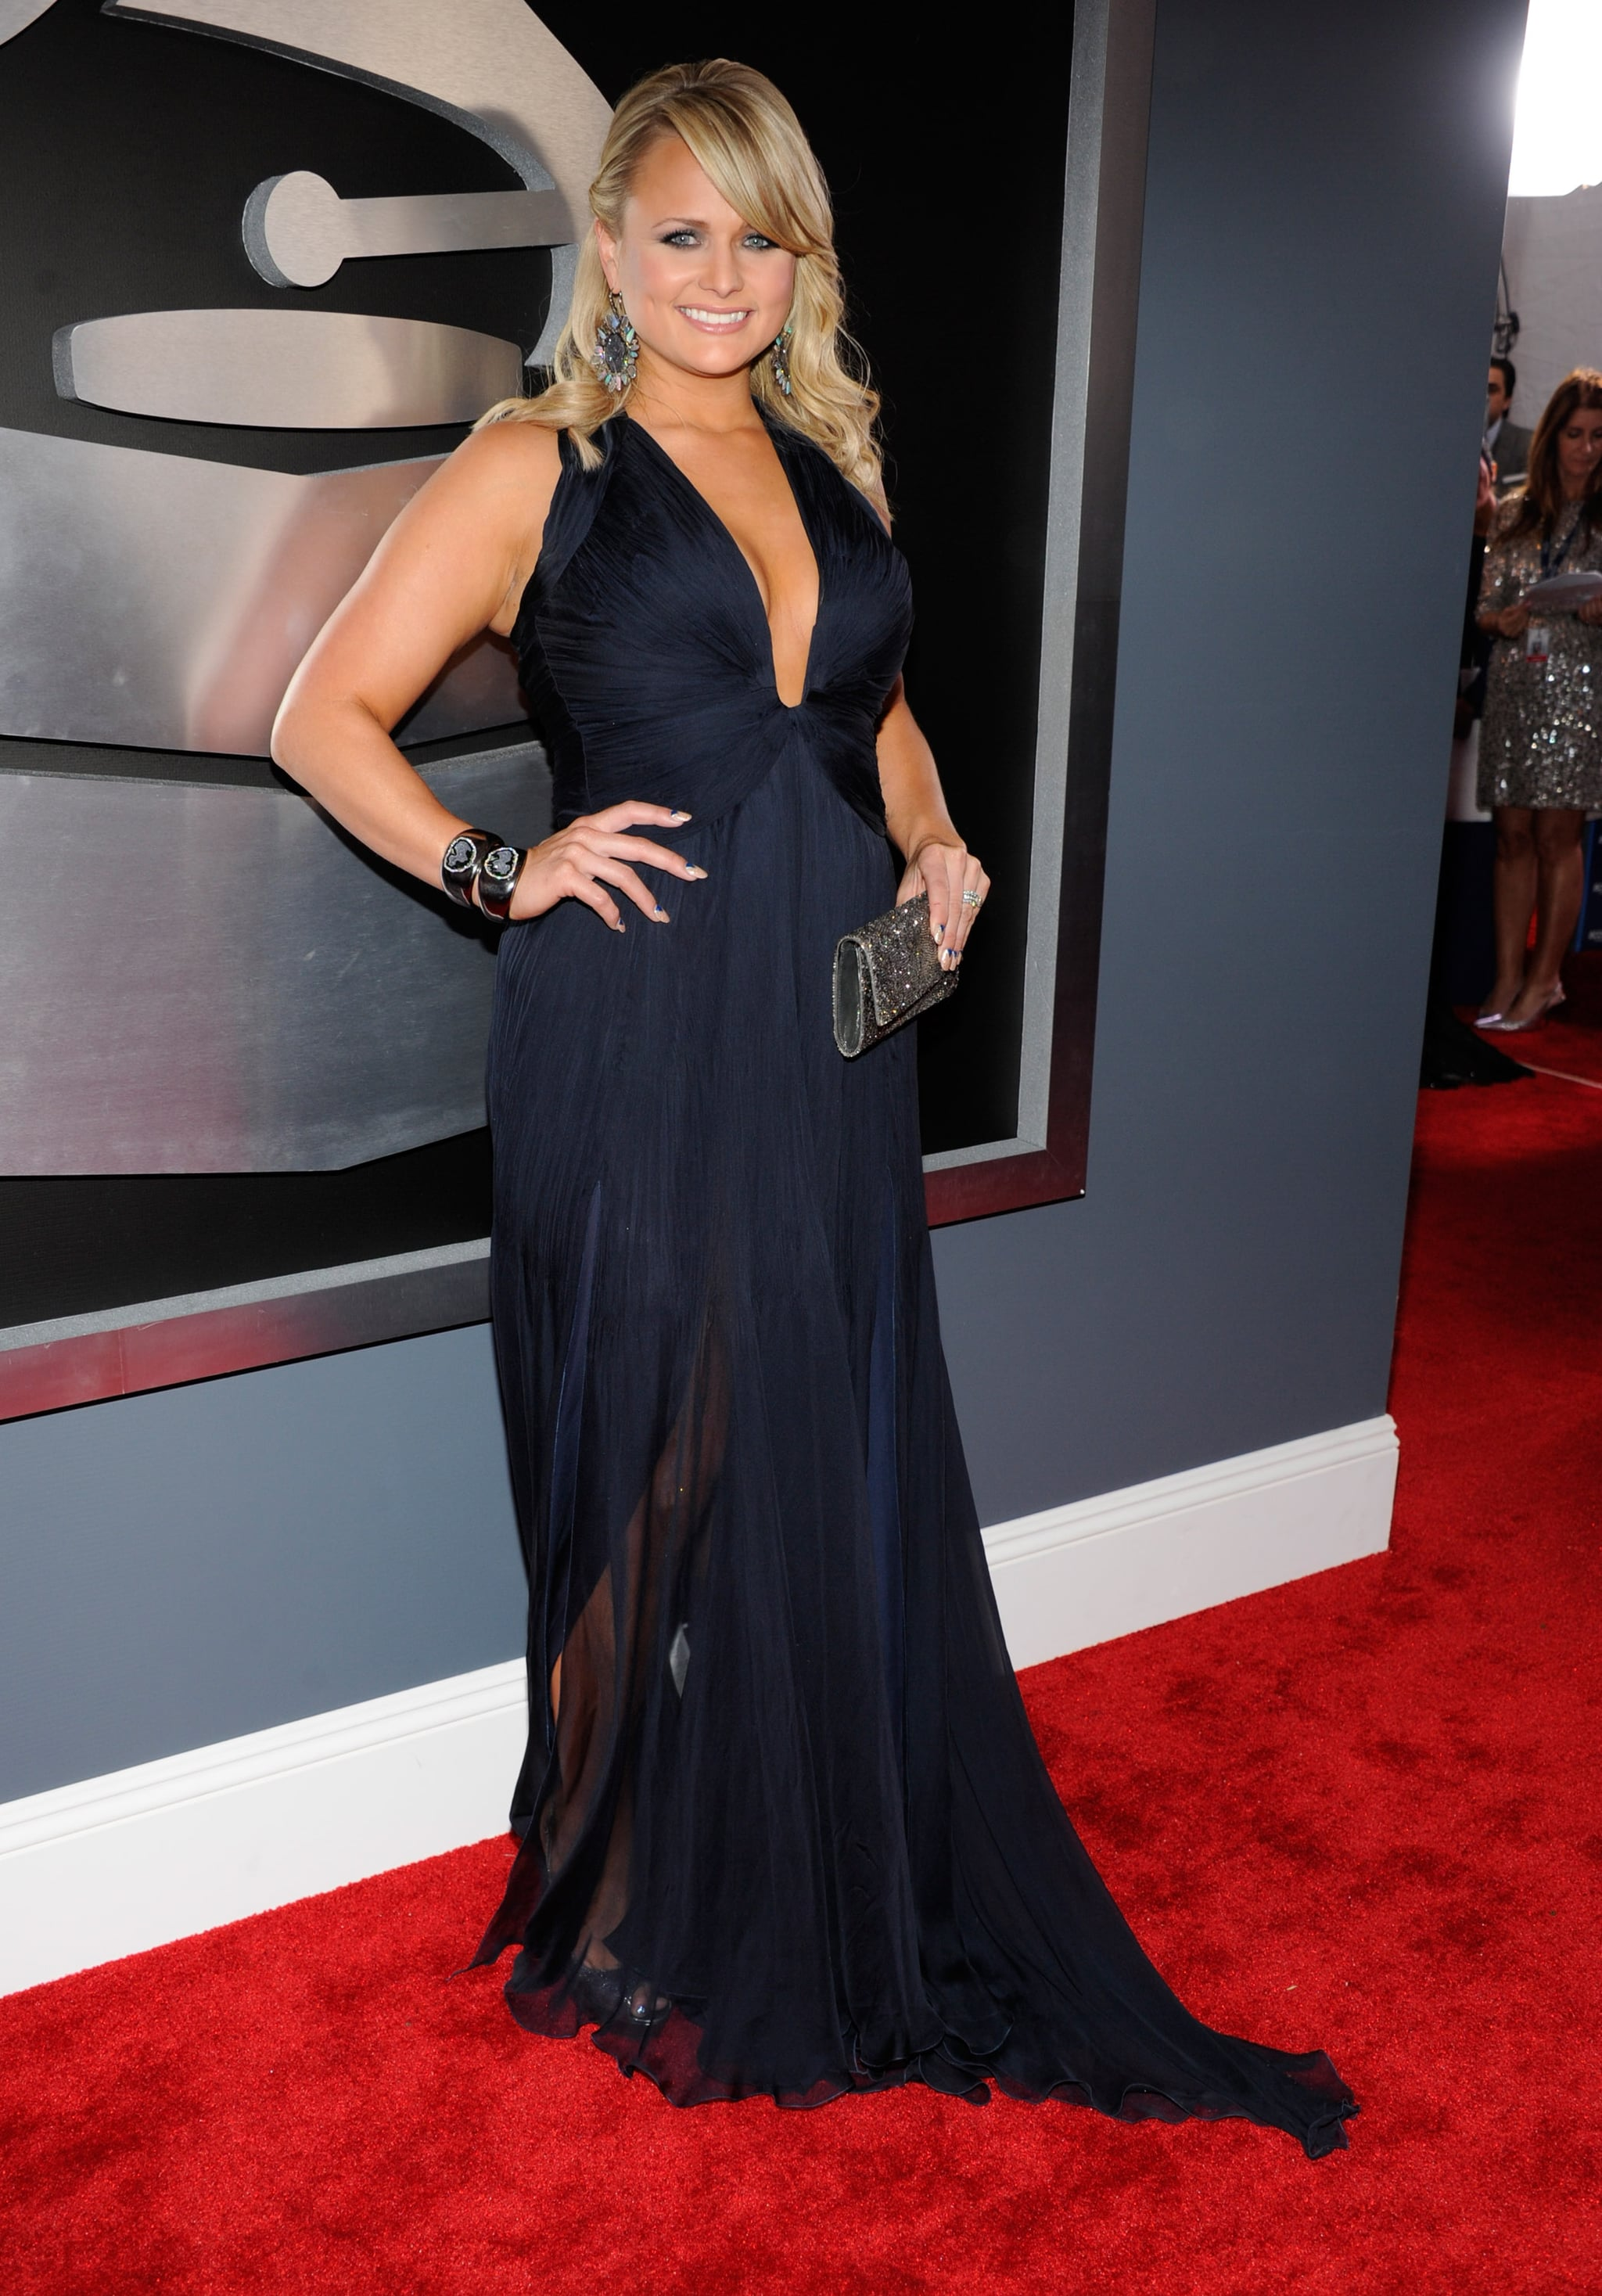 Performer Miranda Lambert hit the red carpet before the show.